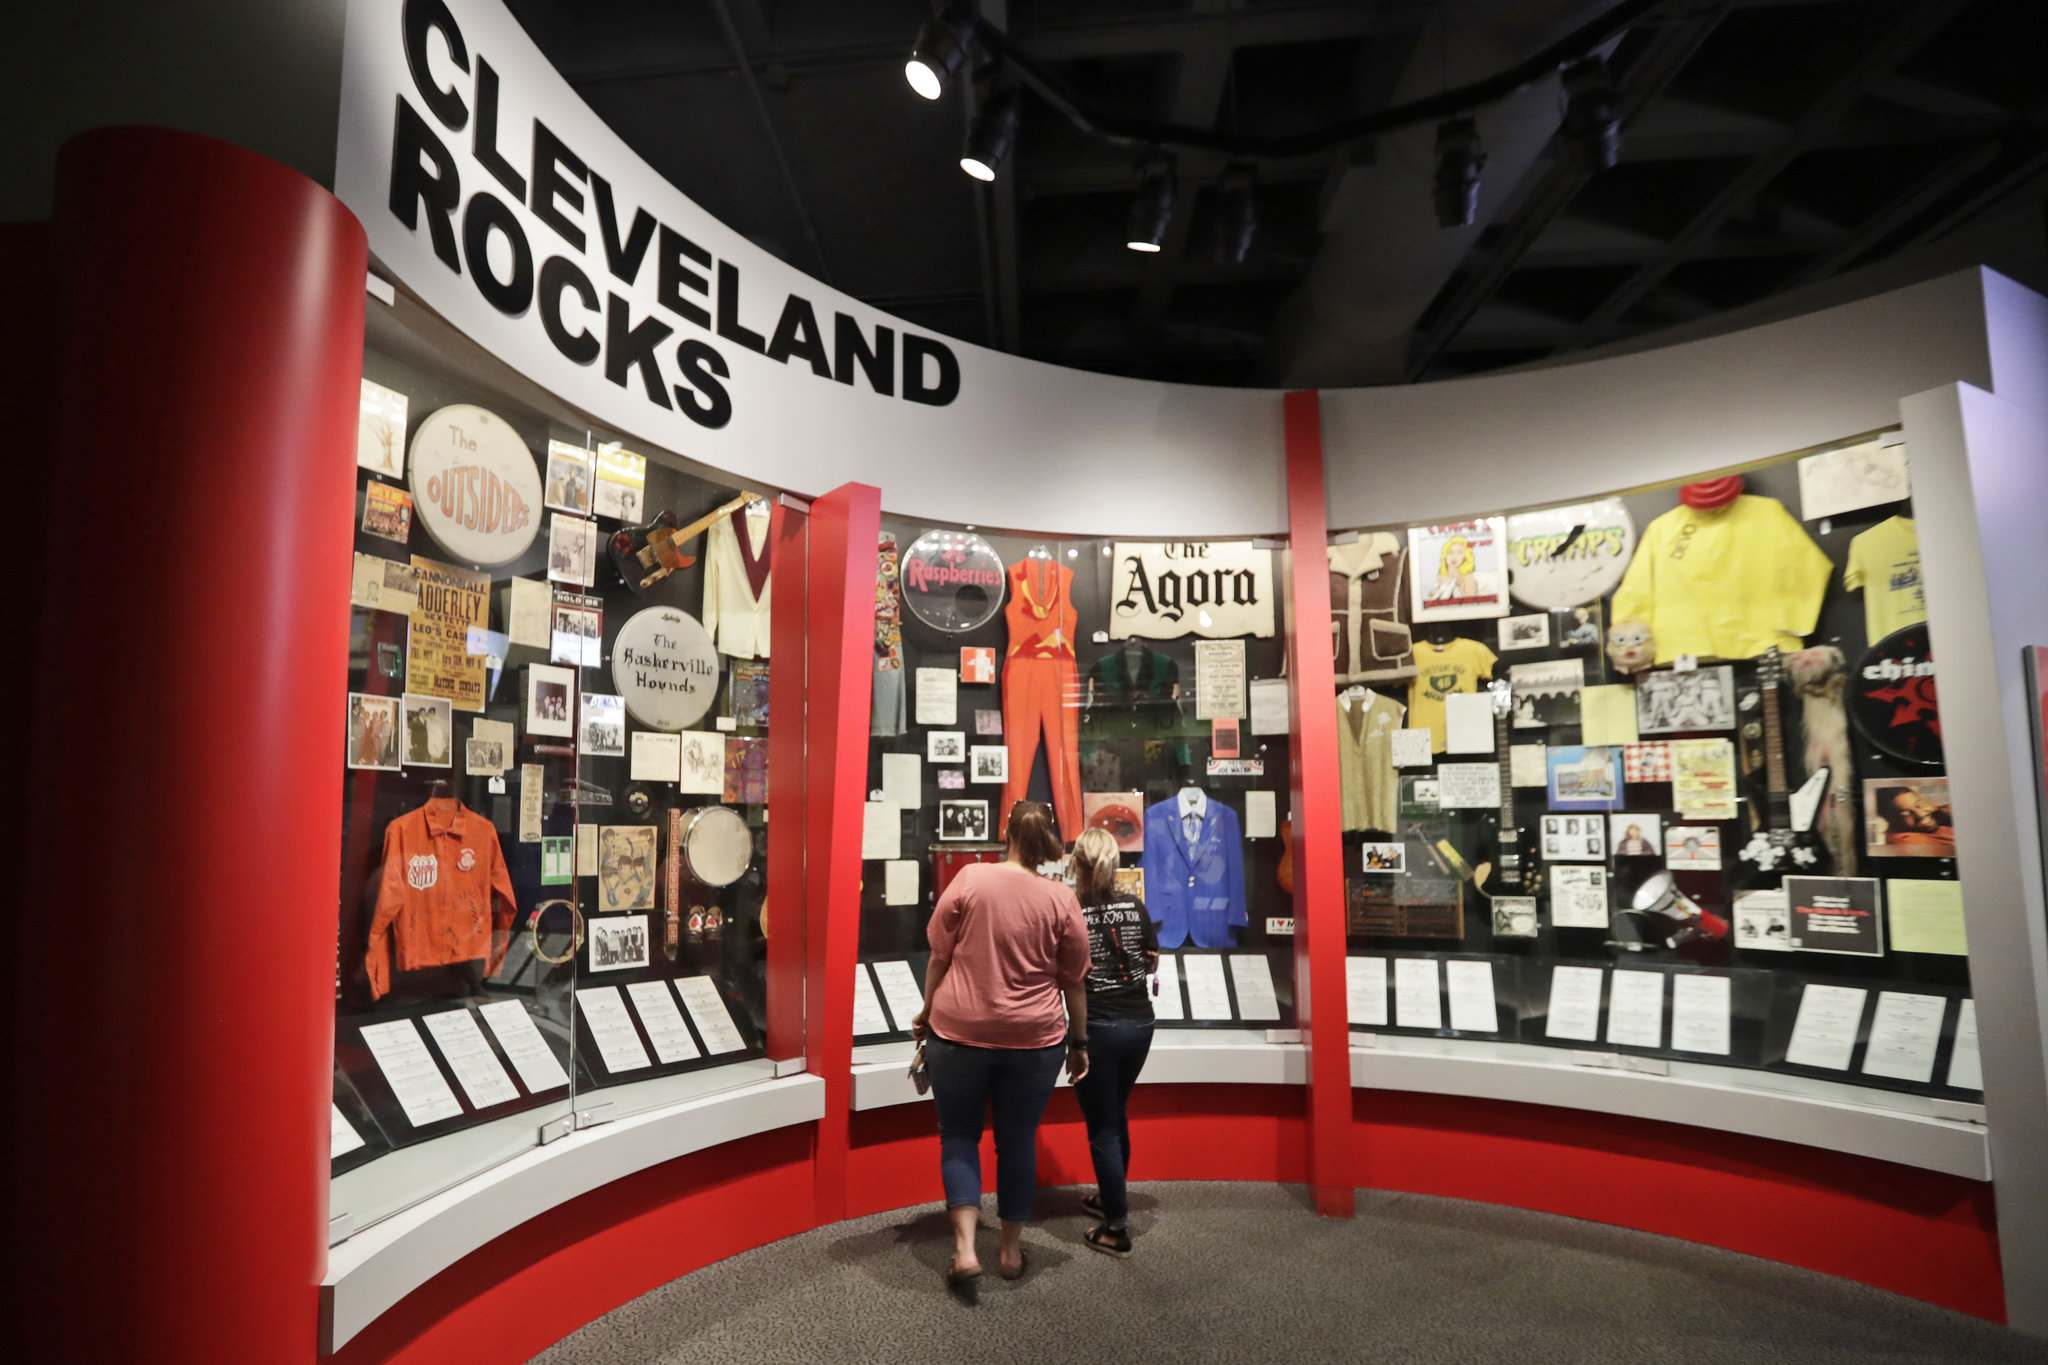 Museum visitors enjoy an exhibit at the Rock and Roll Hall of Fame in Cleveland. (Tony Dejak / The Associated Press)